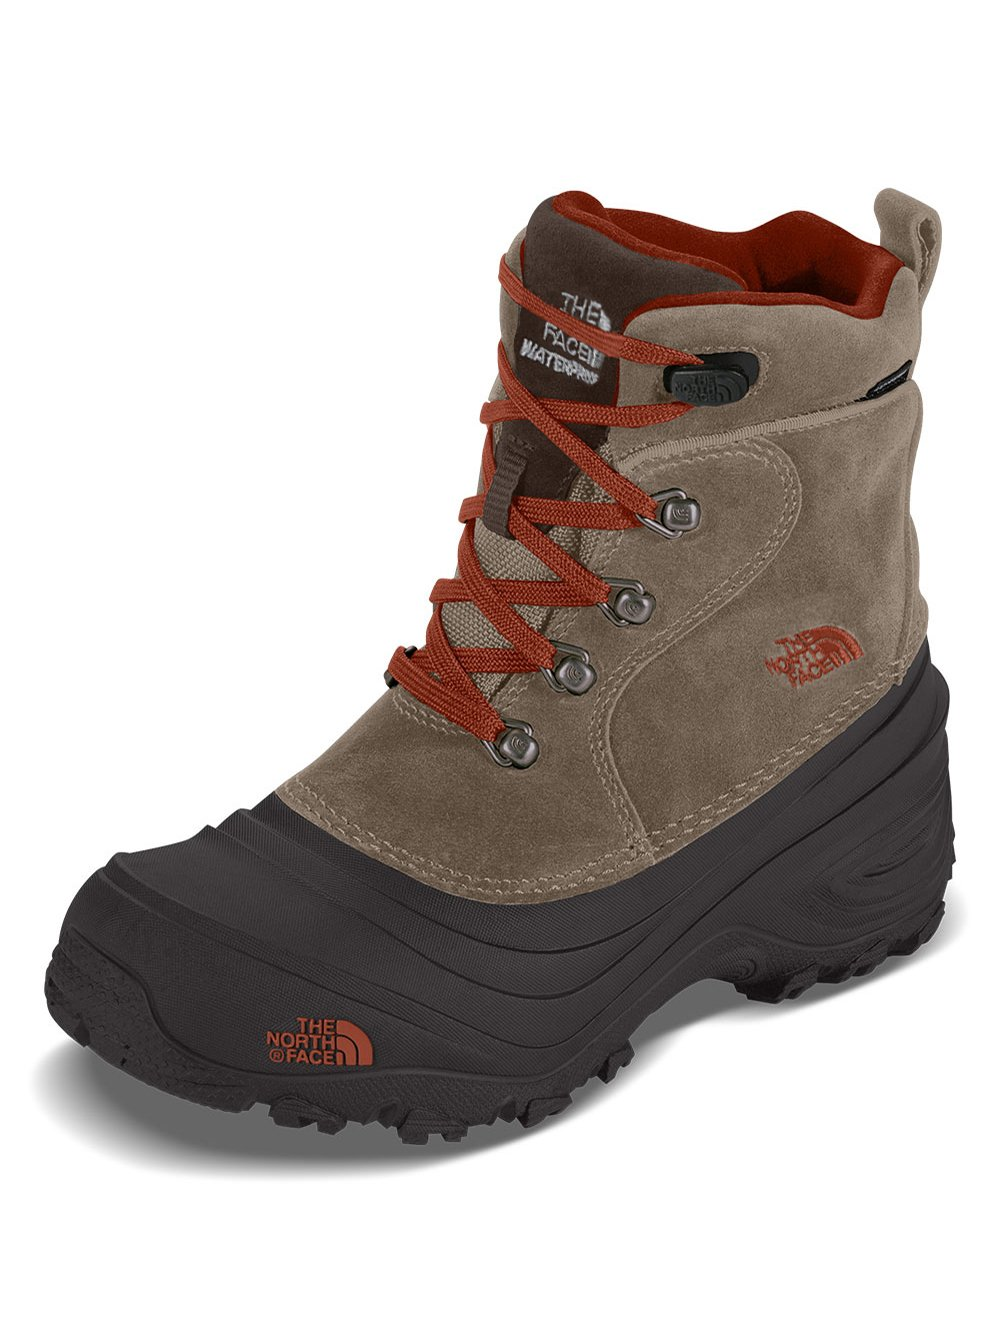 The North Face Boys Chilkat Lace II Boots - mudpack brown/sienna orange, 5